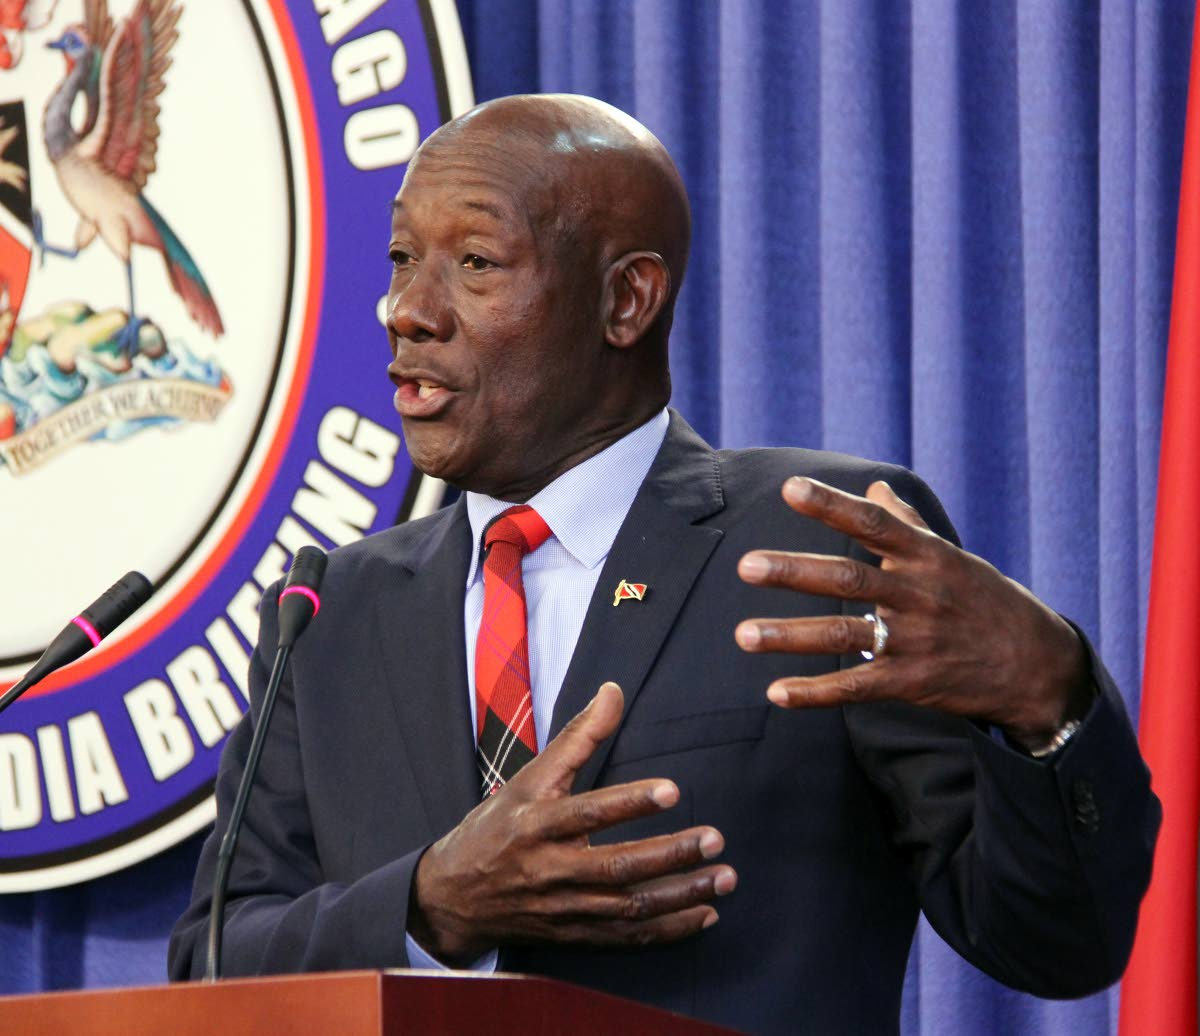 EMBARRASSED: Prime Minister Dr Keith Rowley addresses the media at yesterday's post-Cabinet briefing at the Diplomatic Centre in St Ann's. PHOTO BY SUREASH CHOLAI